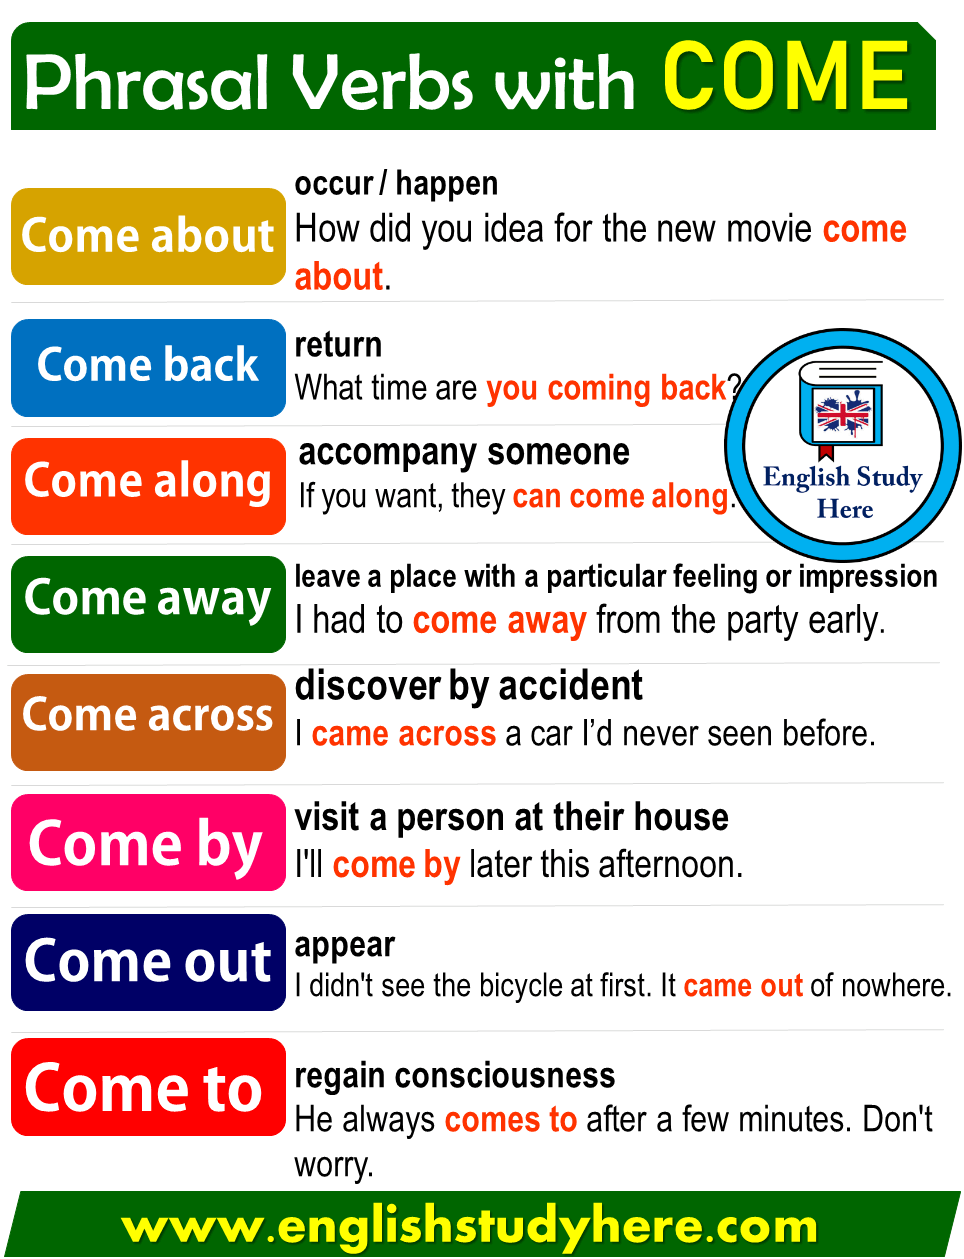 Phrasal Verbs with Come in English